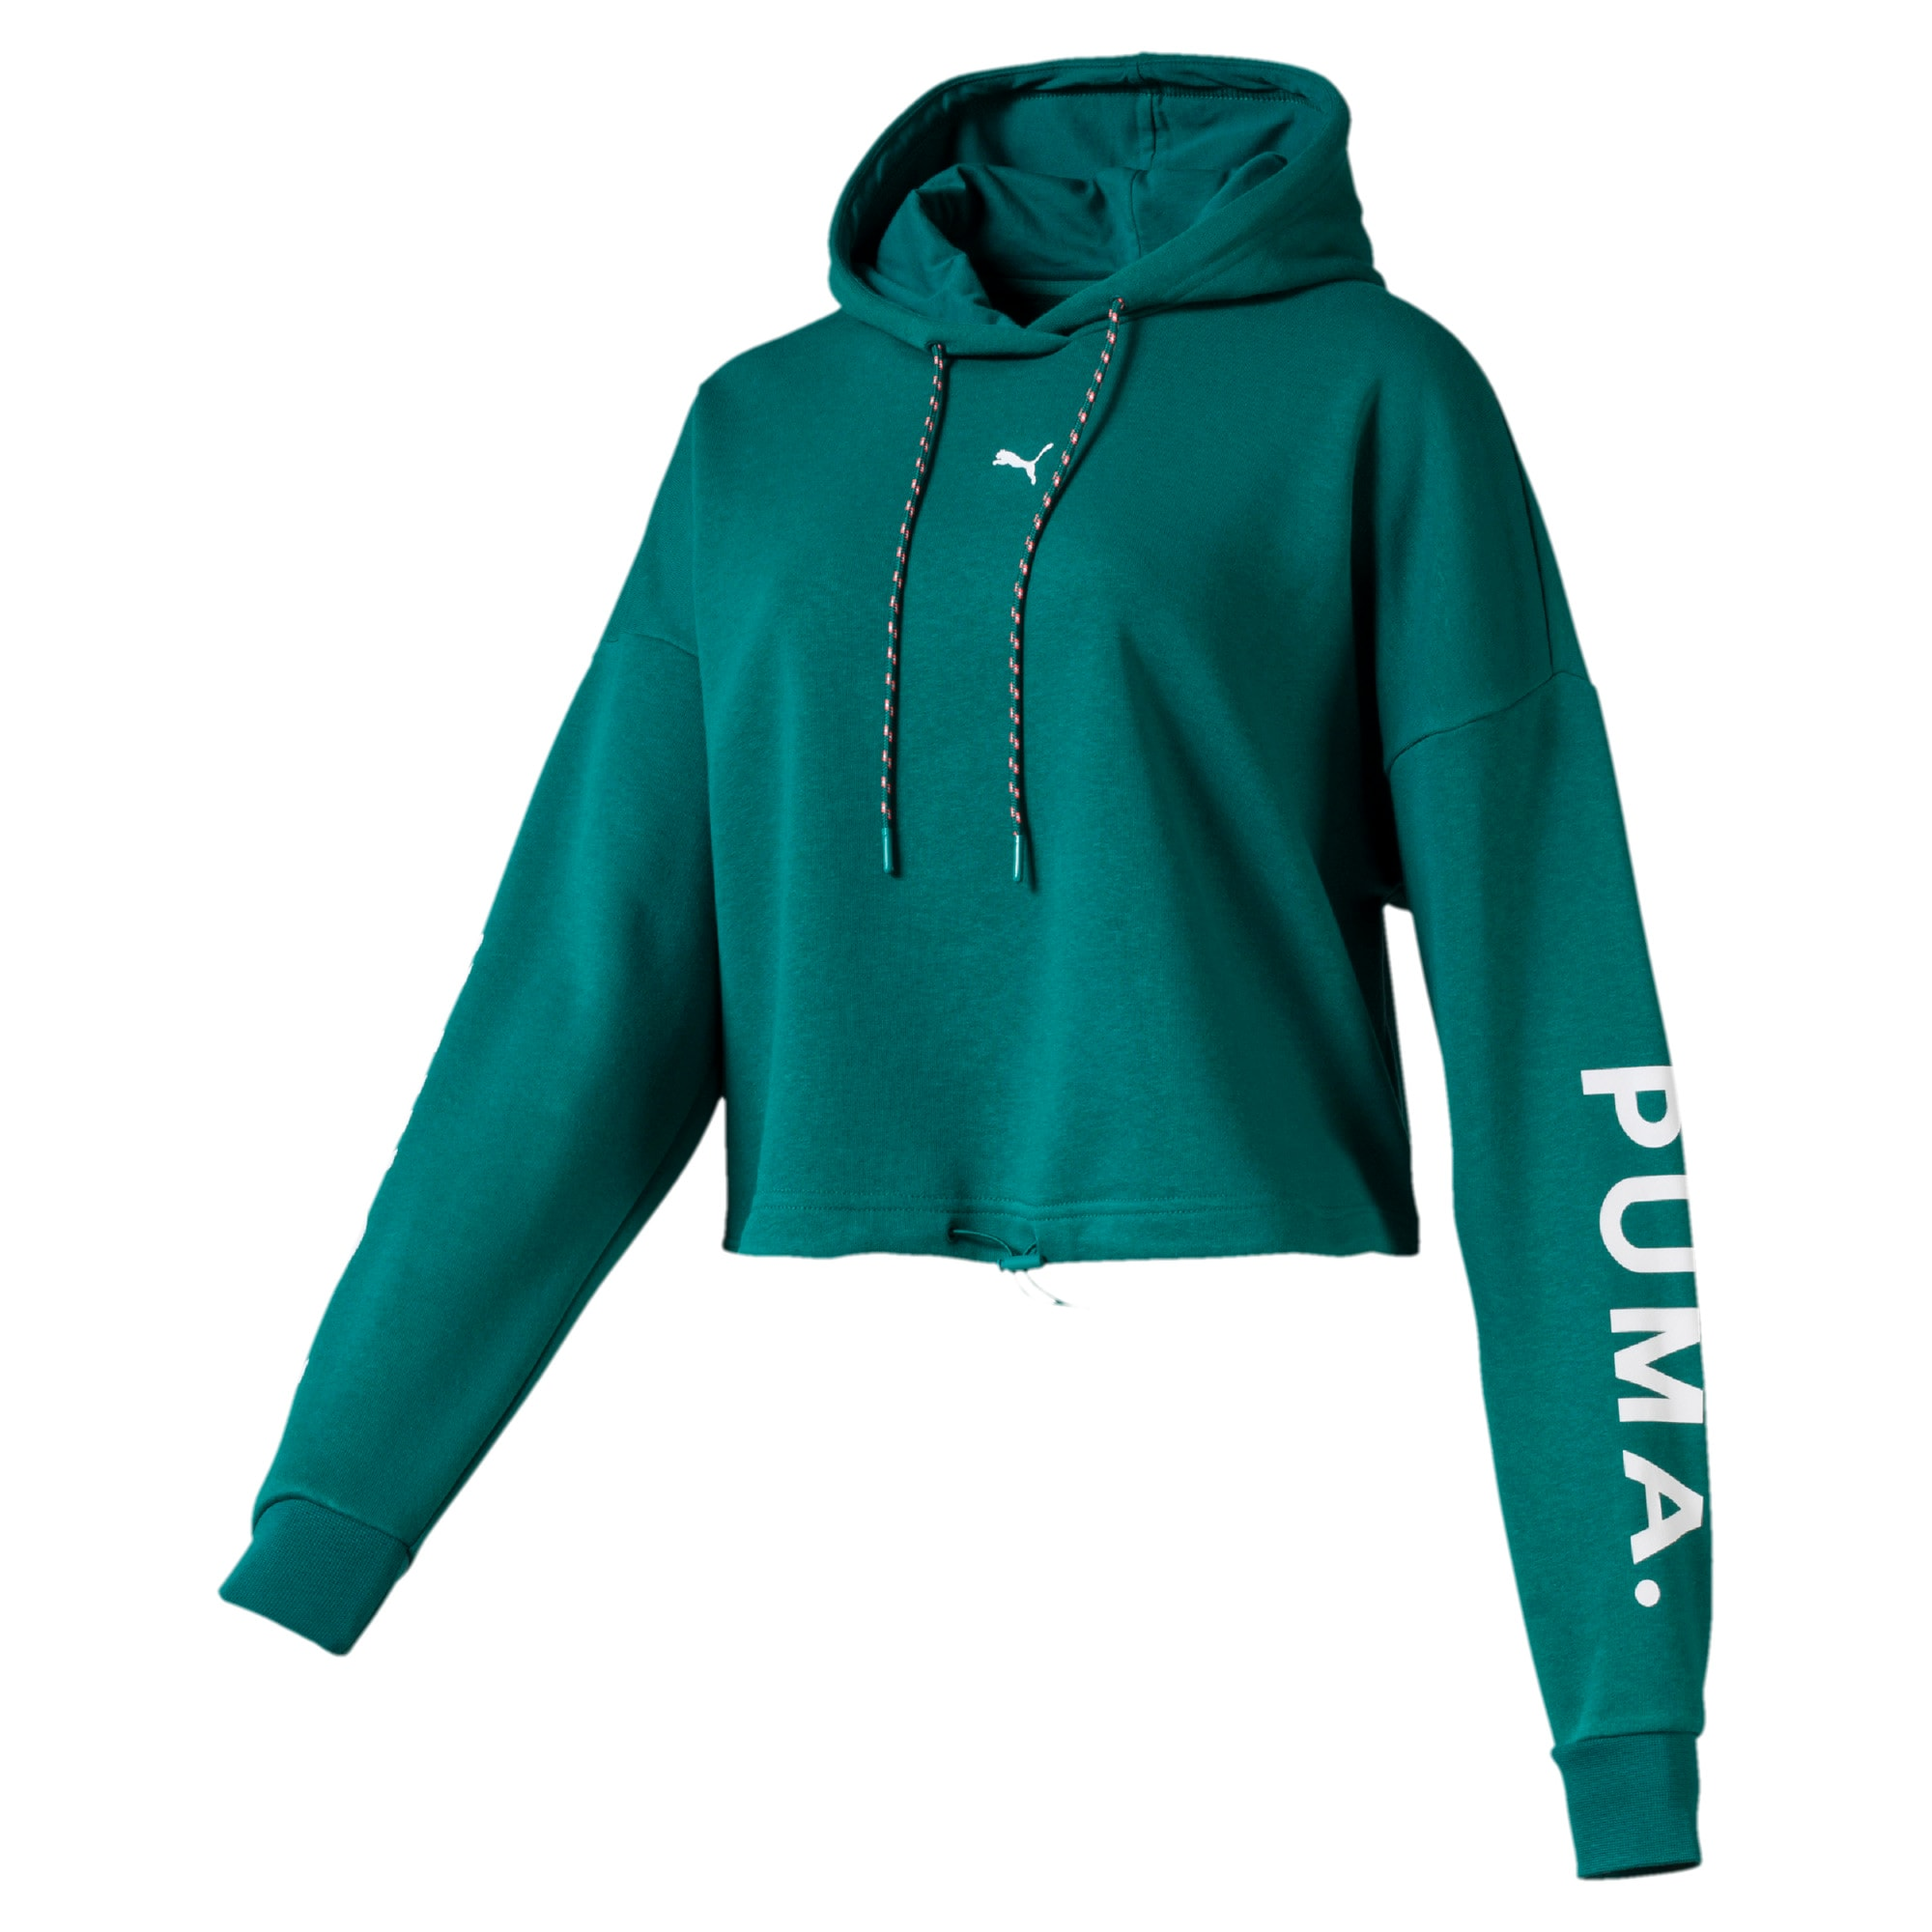 Thumbnail 1 of Chase Women's Cropped Hoodie, Teal Green, medium